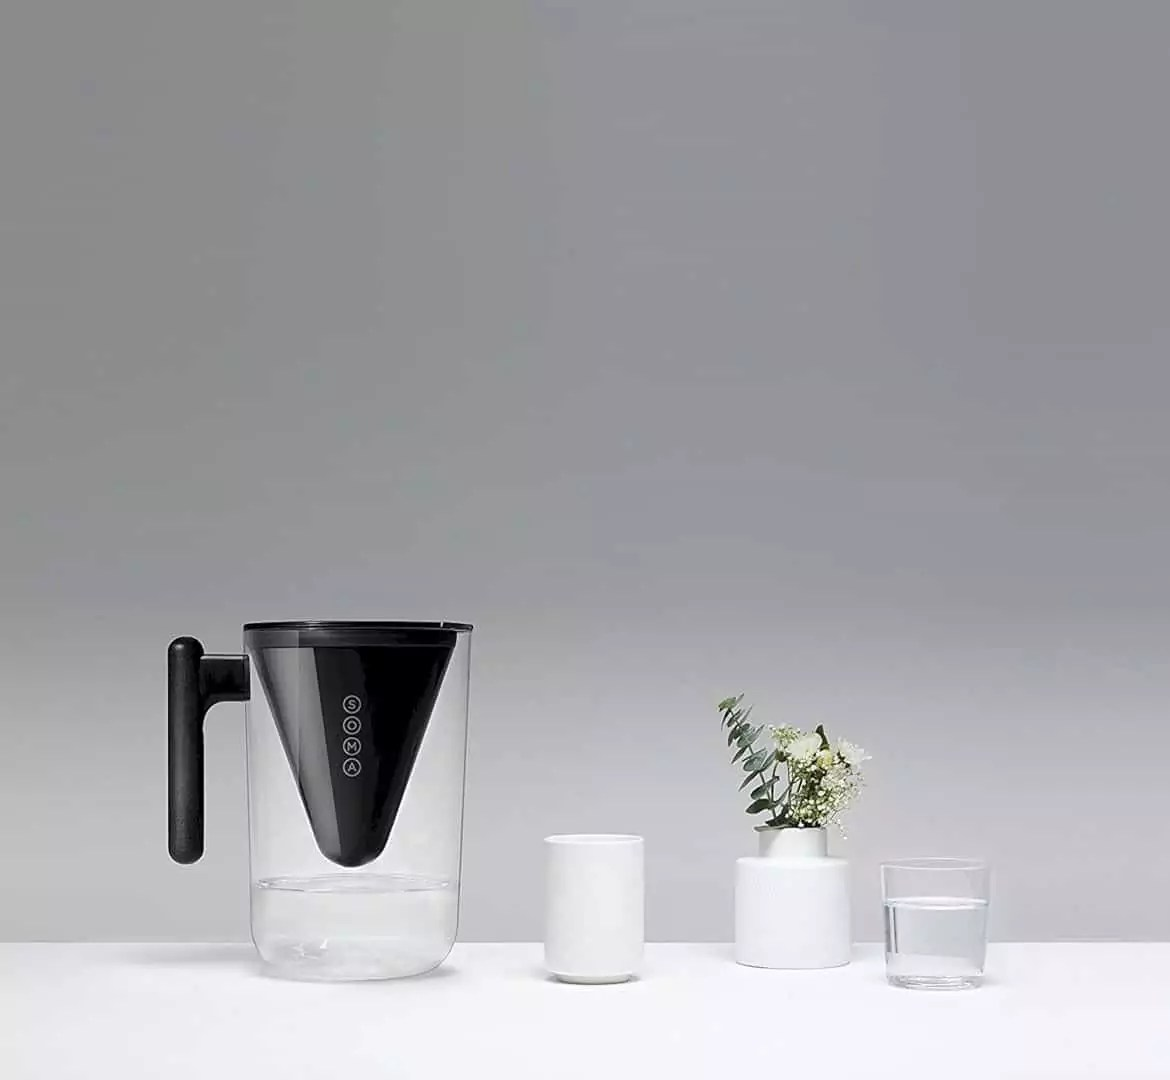 Be Sustainable with the Help of Soma Water Filter